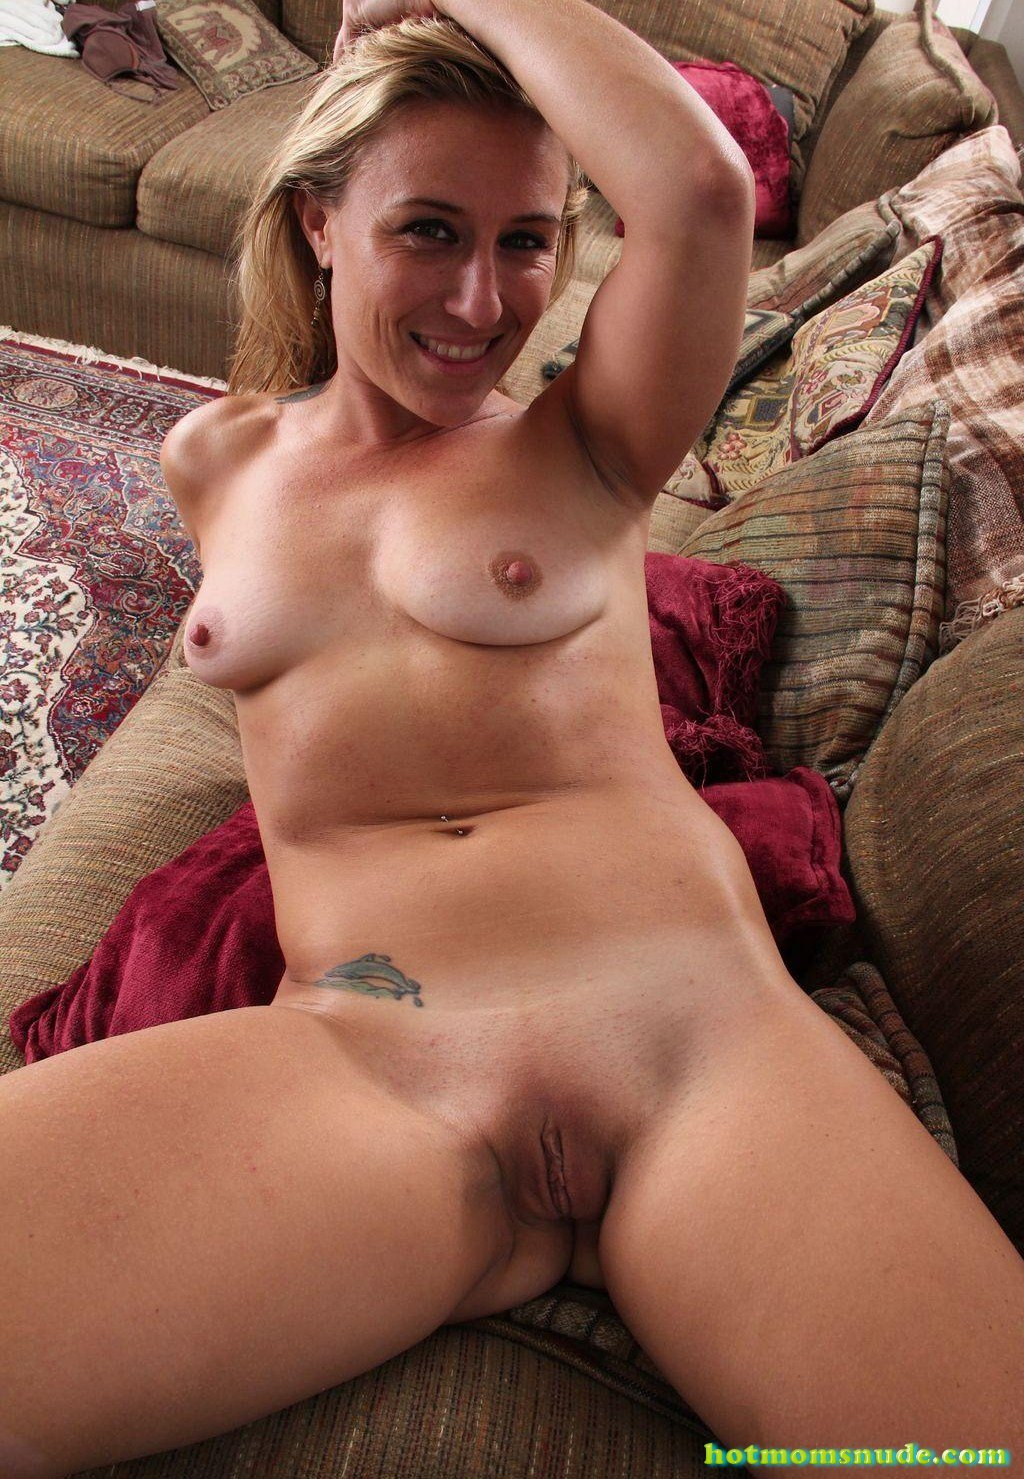 Milf Chance nude pics and biography